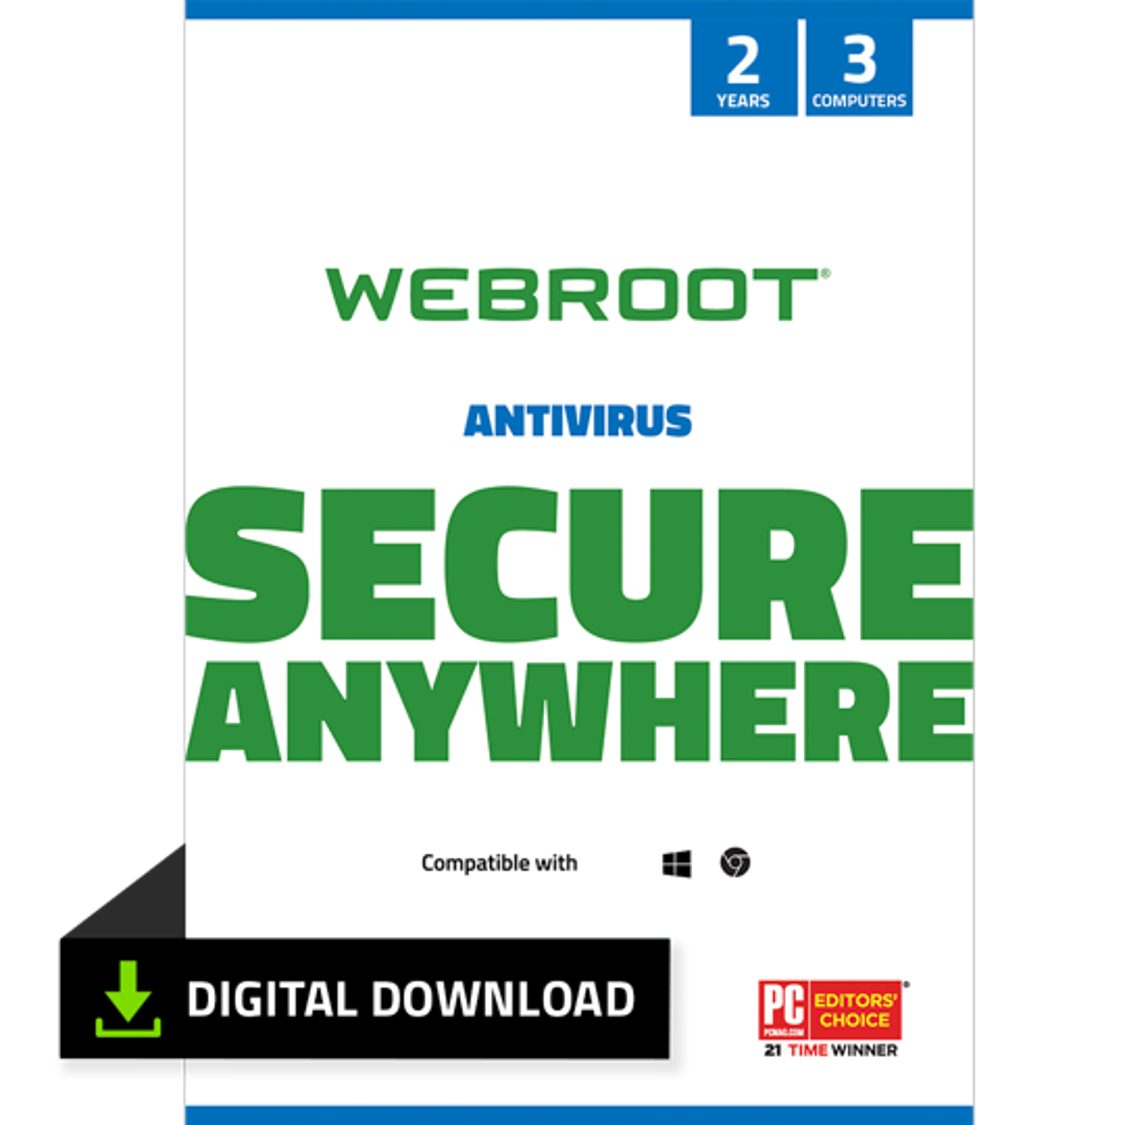 Webroot 2 Year Sub Internet Security/Antivirus 3 Devices (via email) $24.99